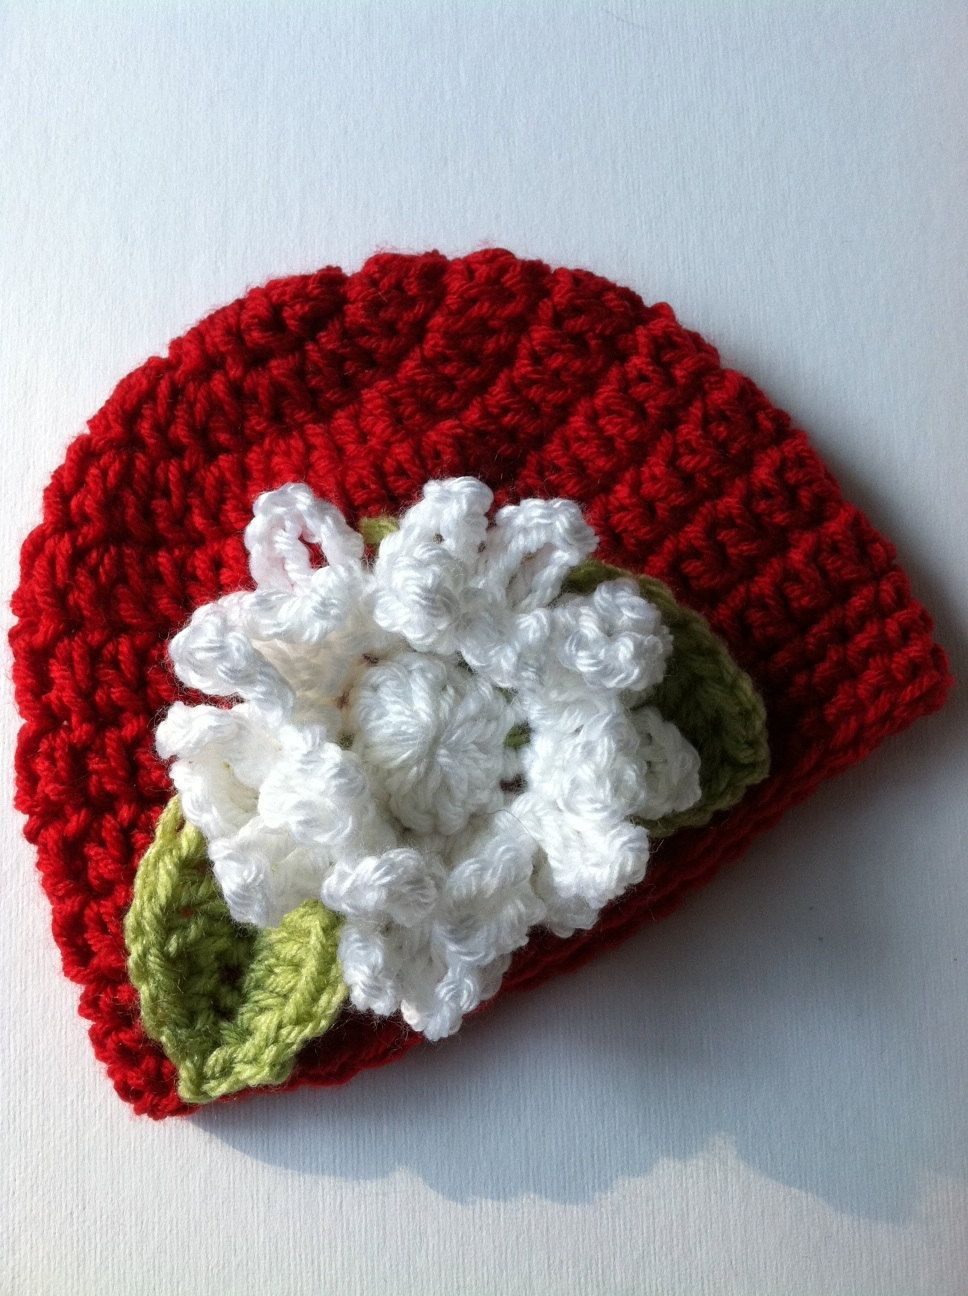 af07c15a200 Red Crochet Baby Hat with Flower